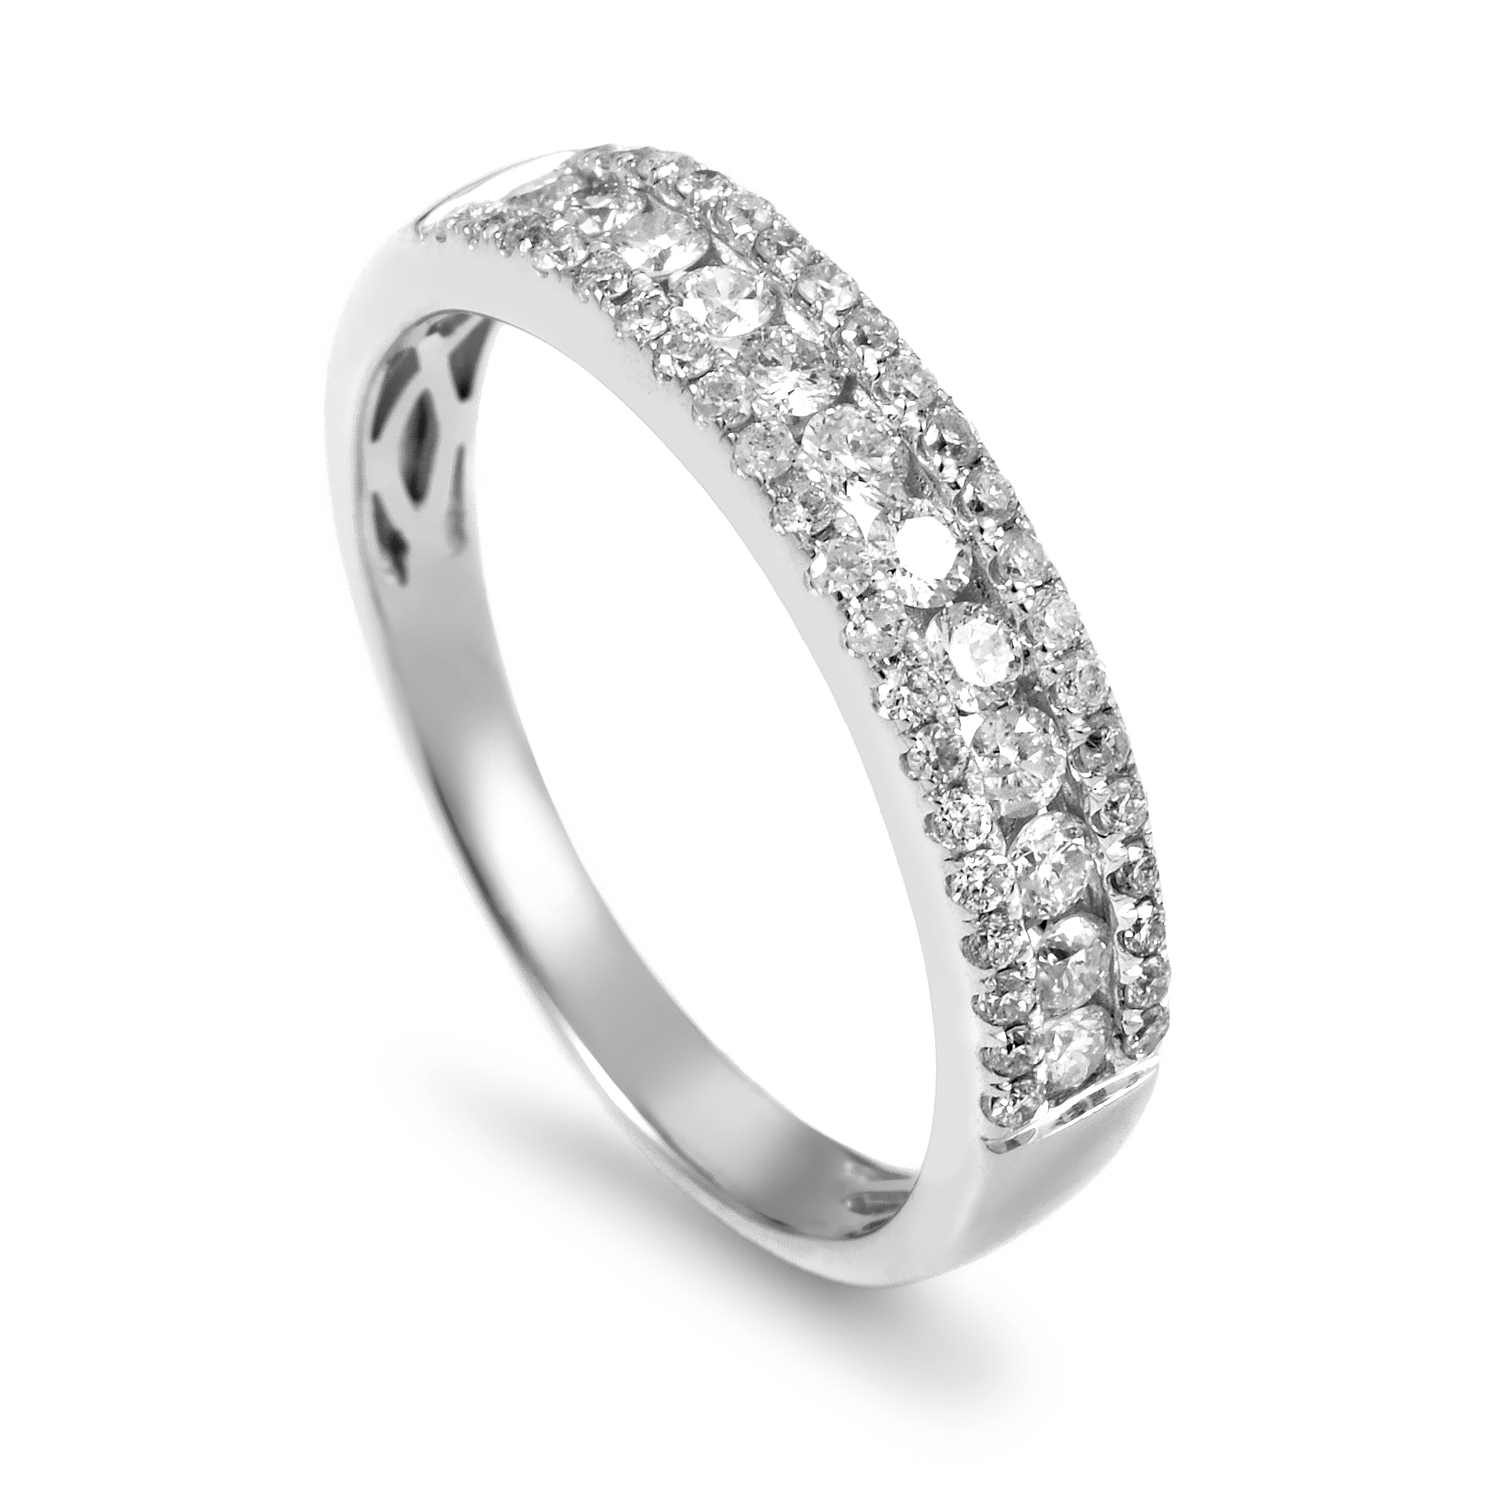 Women's 14K White Gold Diamond Band Ring ALR-9862W